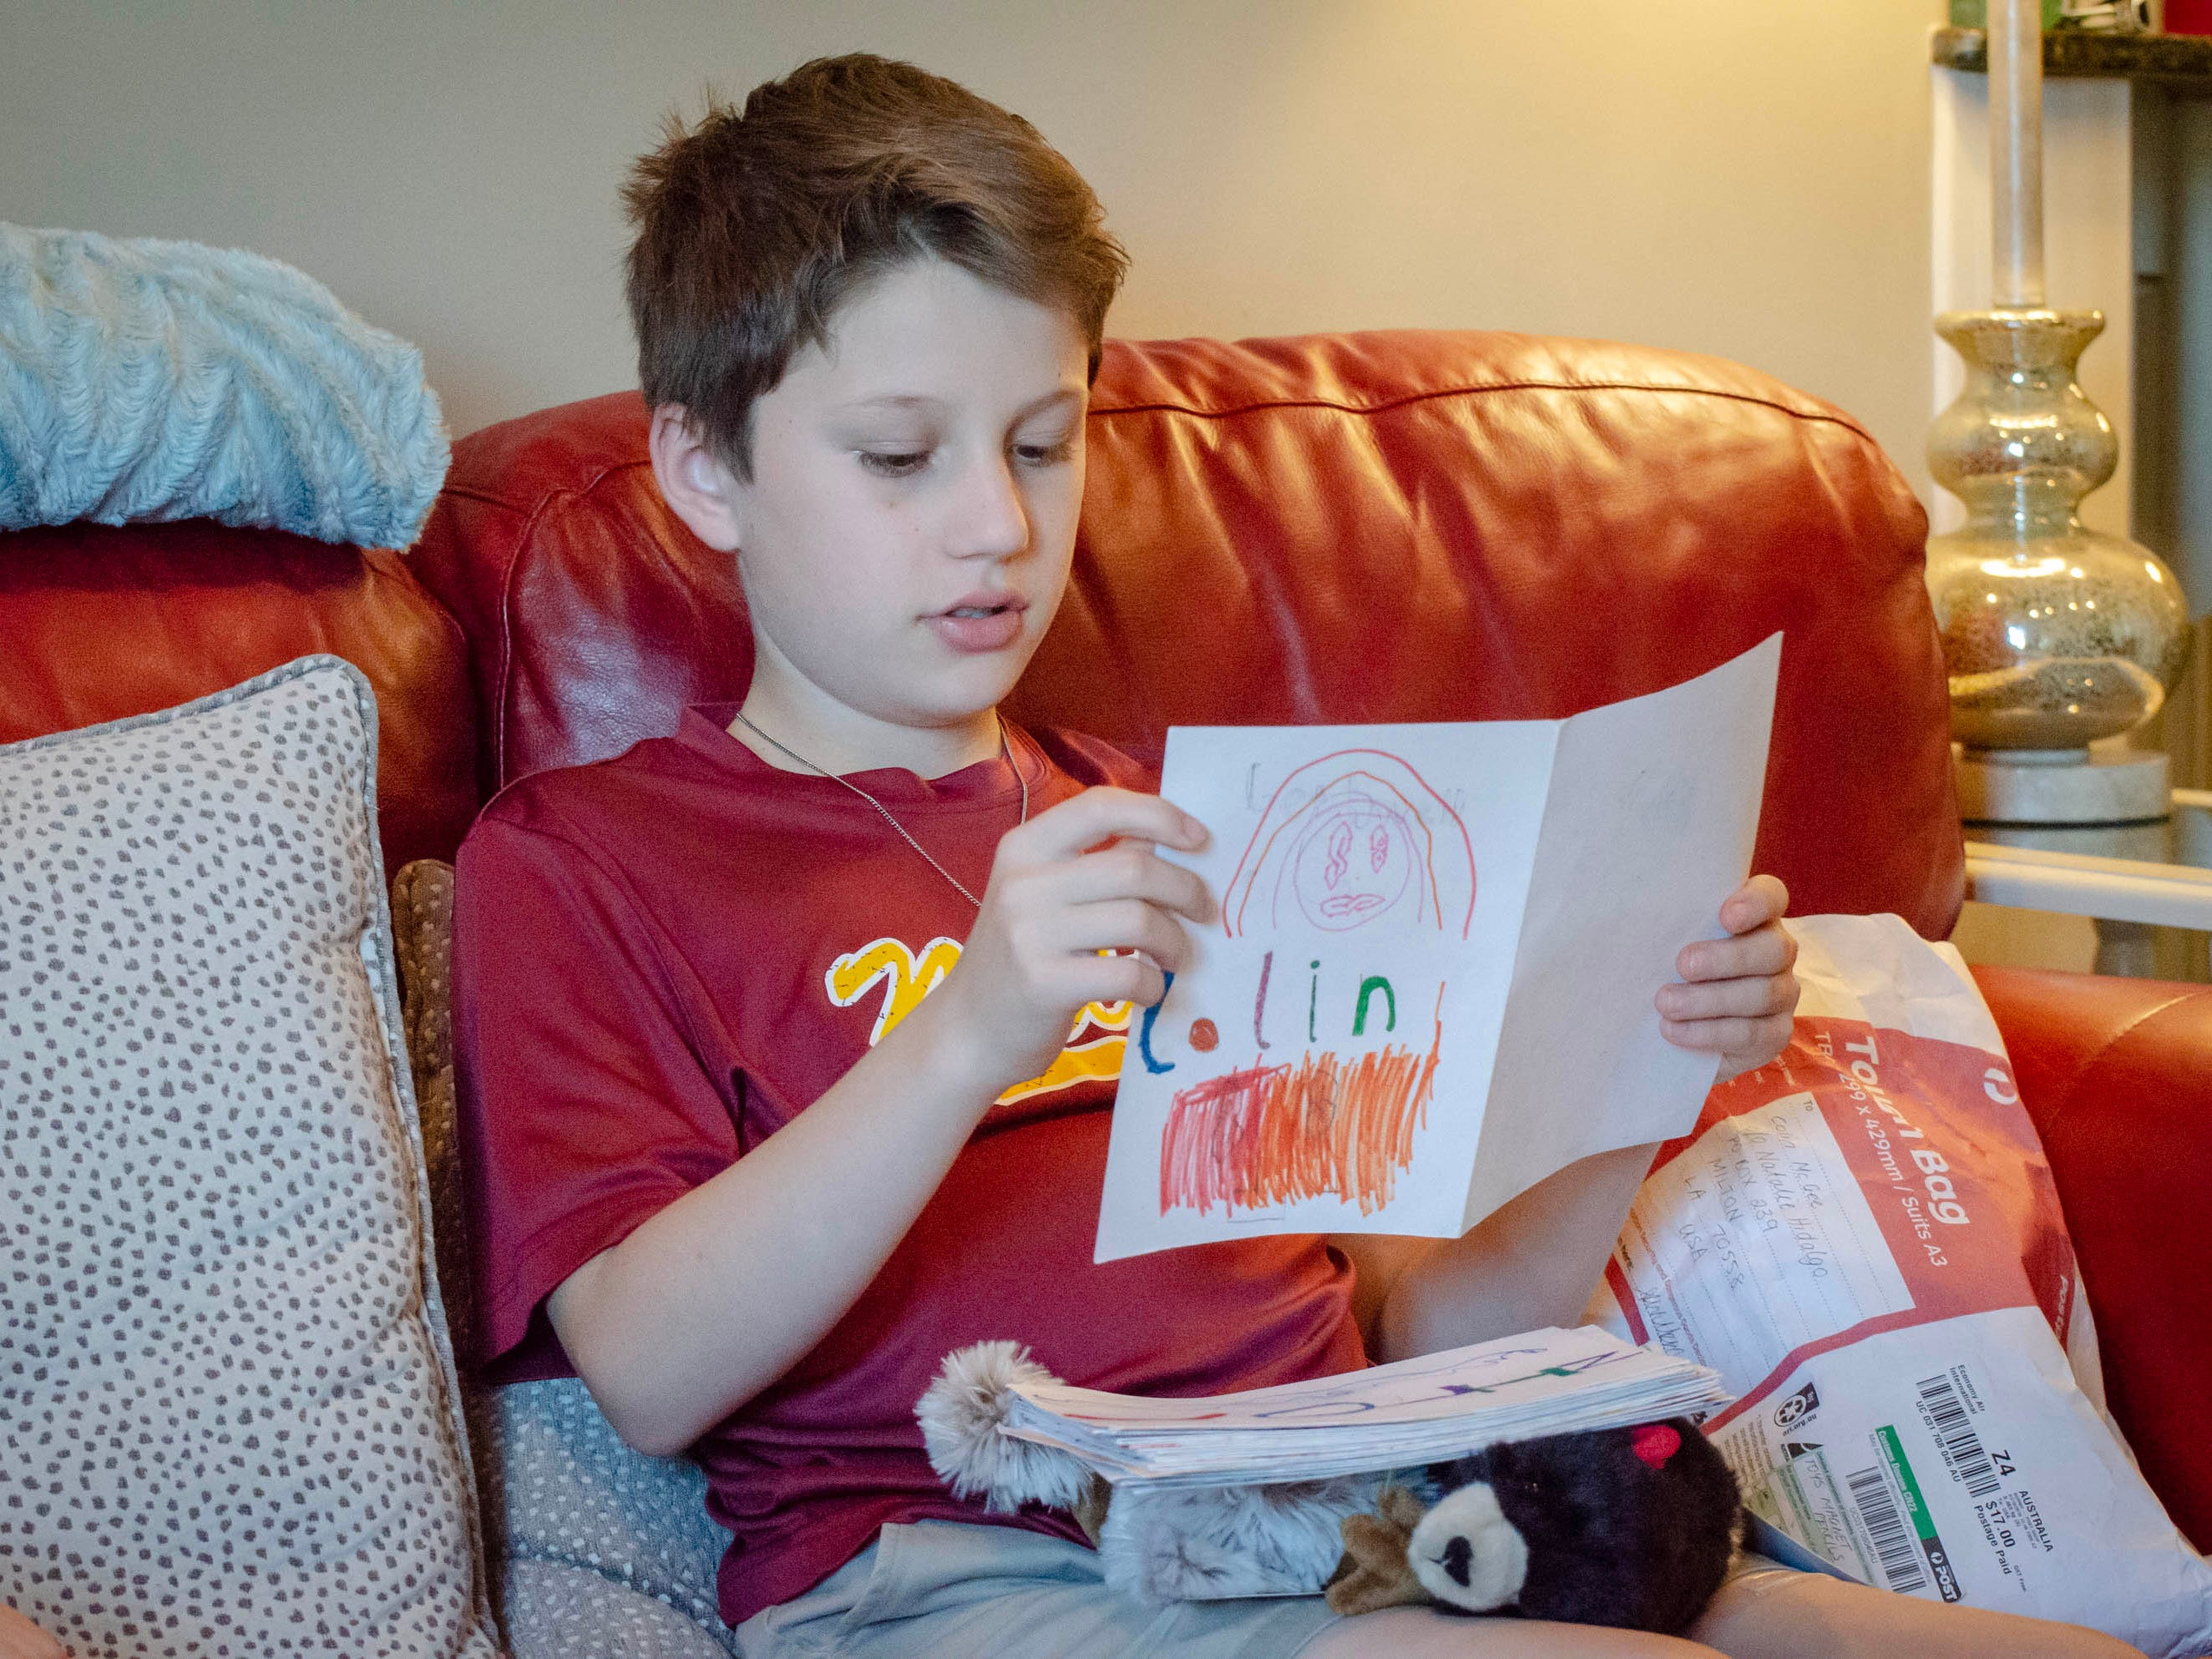 Colin McGee reads and shows letters sent to him from Australia. Colin, 11, had a 7-inch malignant tumor and kidney removed, went through months of chemotherapy. He rang the bell celebrating his remission in January.